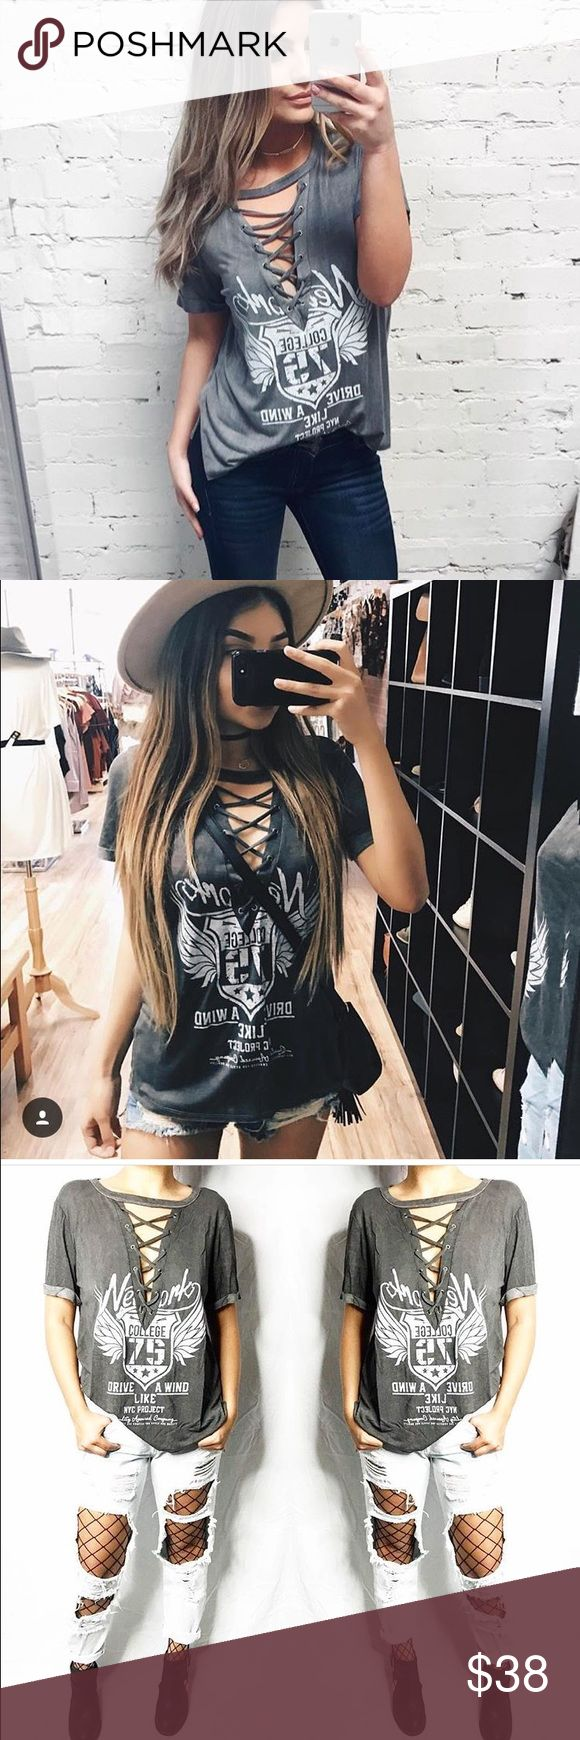 nwt lace up graphic tee cut out caged top t shirt boutique